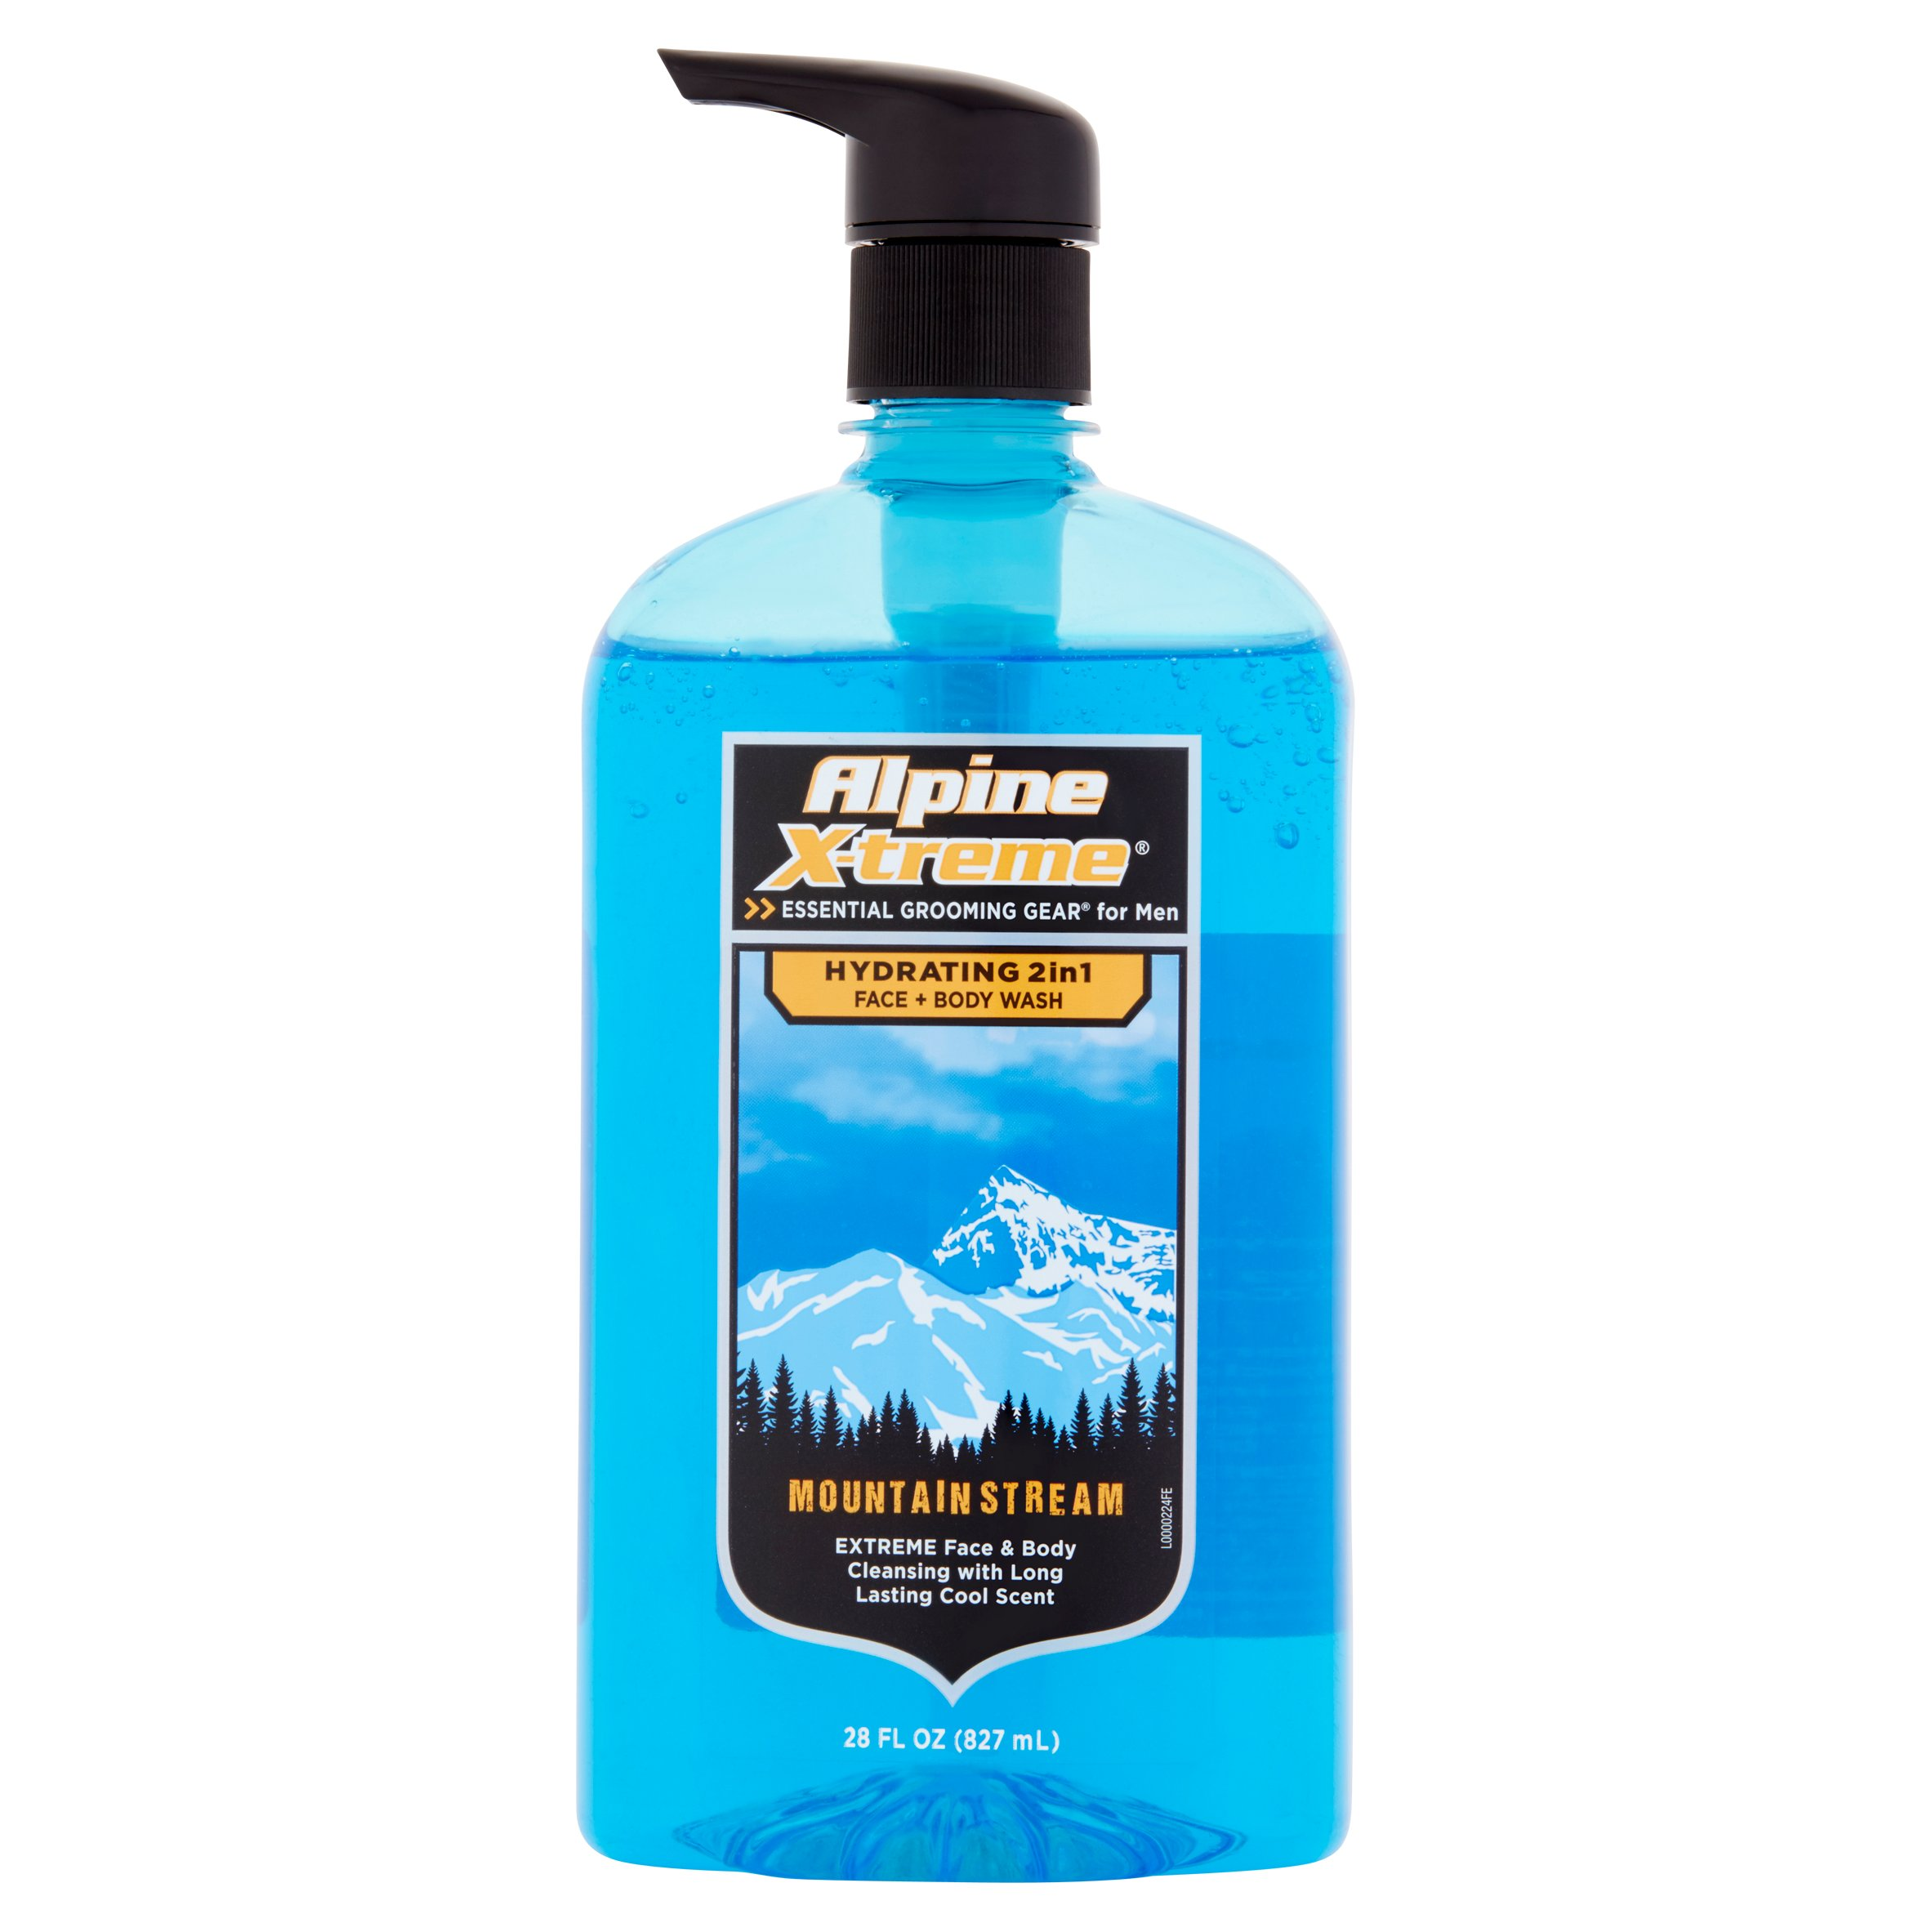 Alpine X-treme Mountain Stream Hydrating 2in1 Face + Body Wash, 28 fl oz